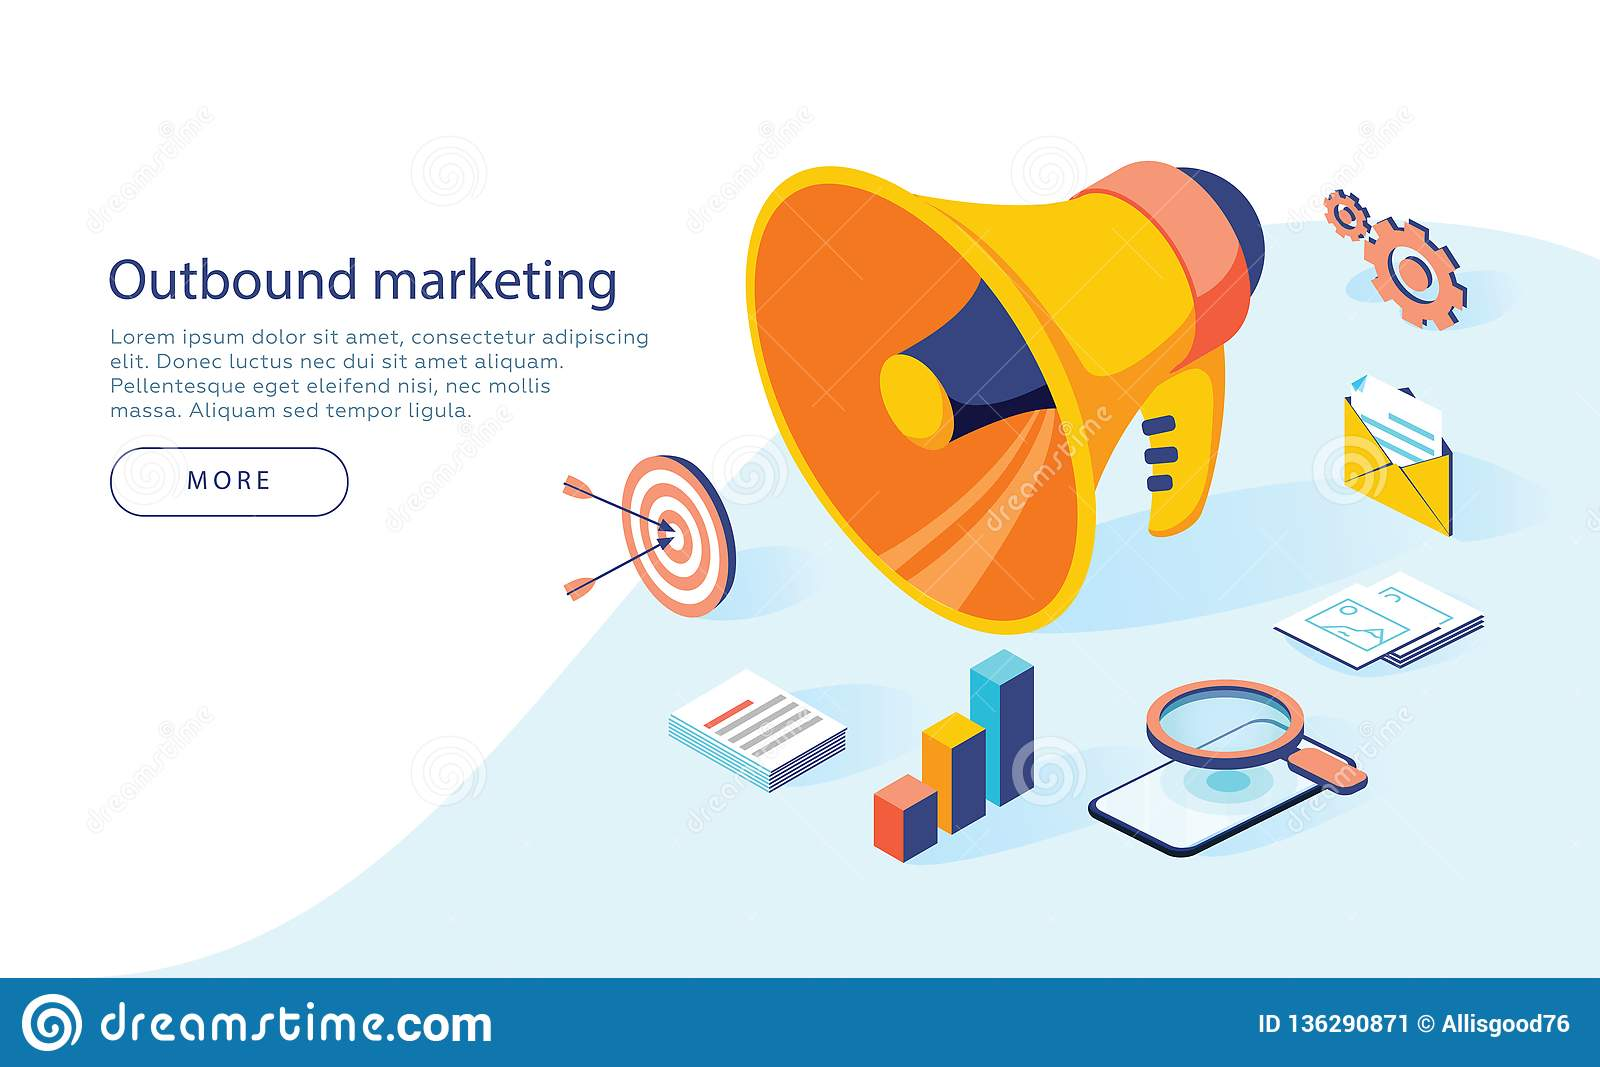 outbound marketing vector business illustration in isometric design offline or interruption marketing background stock vector illustration of outbound alert 136290871 https www dreamstime com outbound marketing vector business illustration isometric design offline interruption background megaphone icons can image136290871